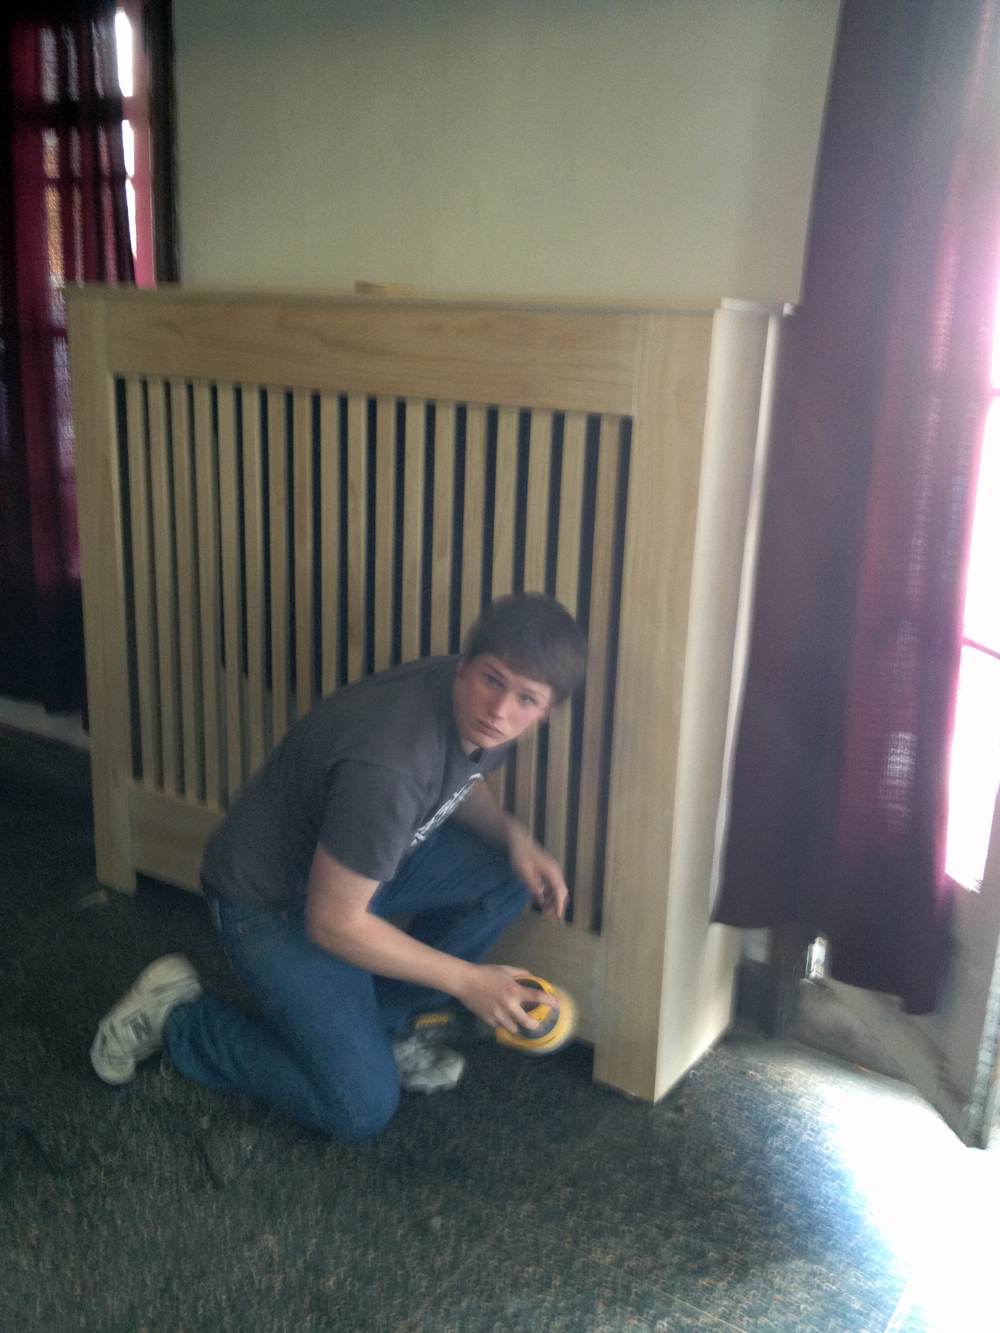 2013 Alumni Work Weekend - Pool Room Project Ian Maxwell puts the final touches on the new radiator covers